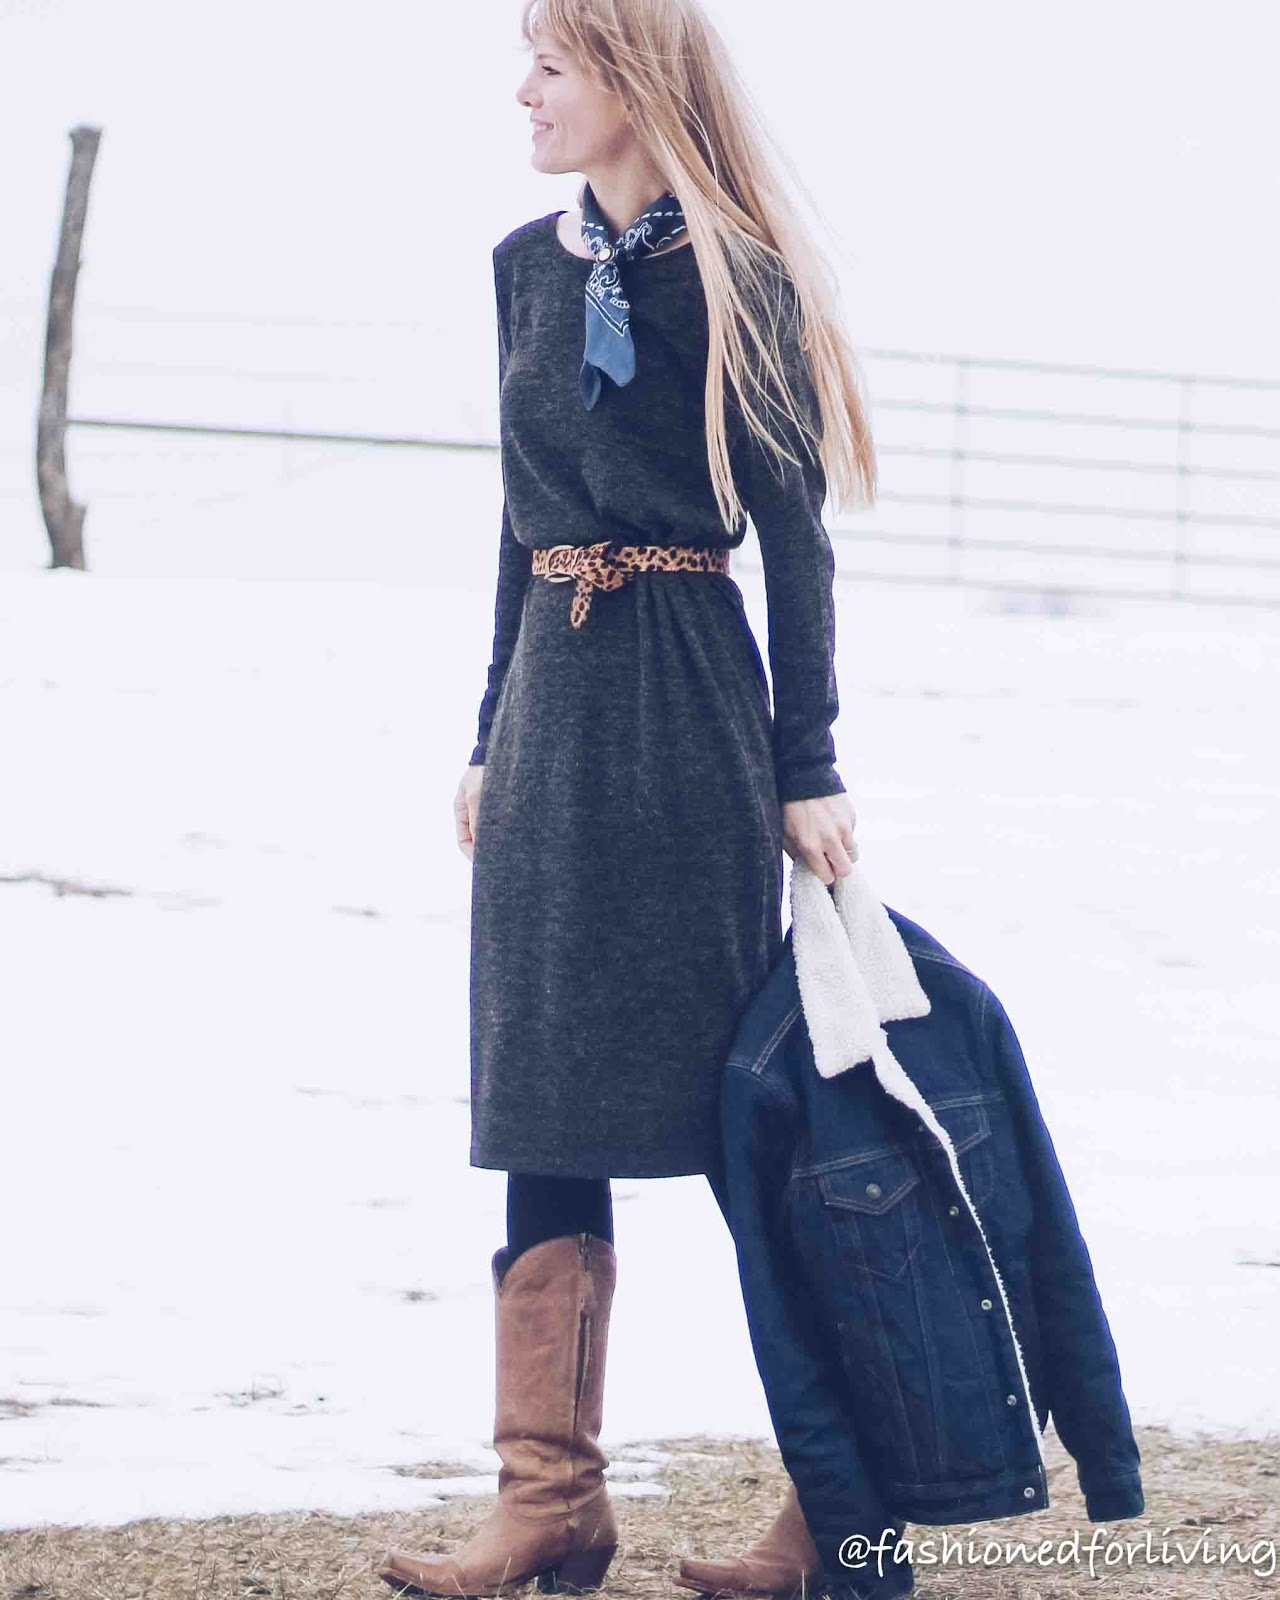 western chic outfit - cowgirl boots and dress